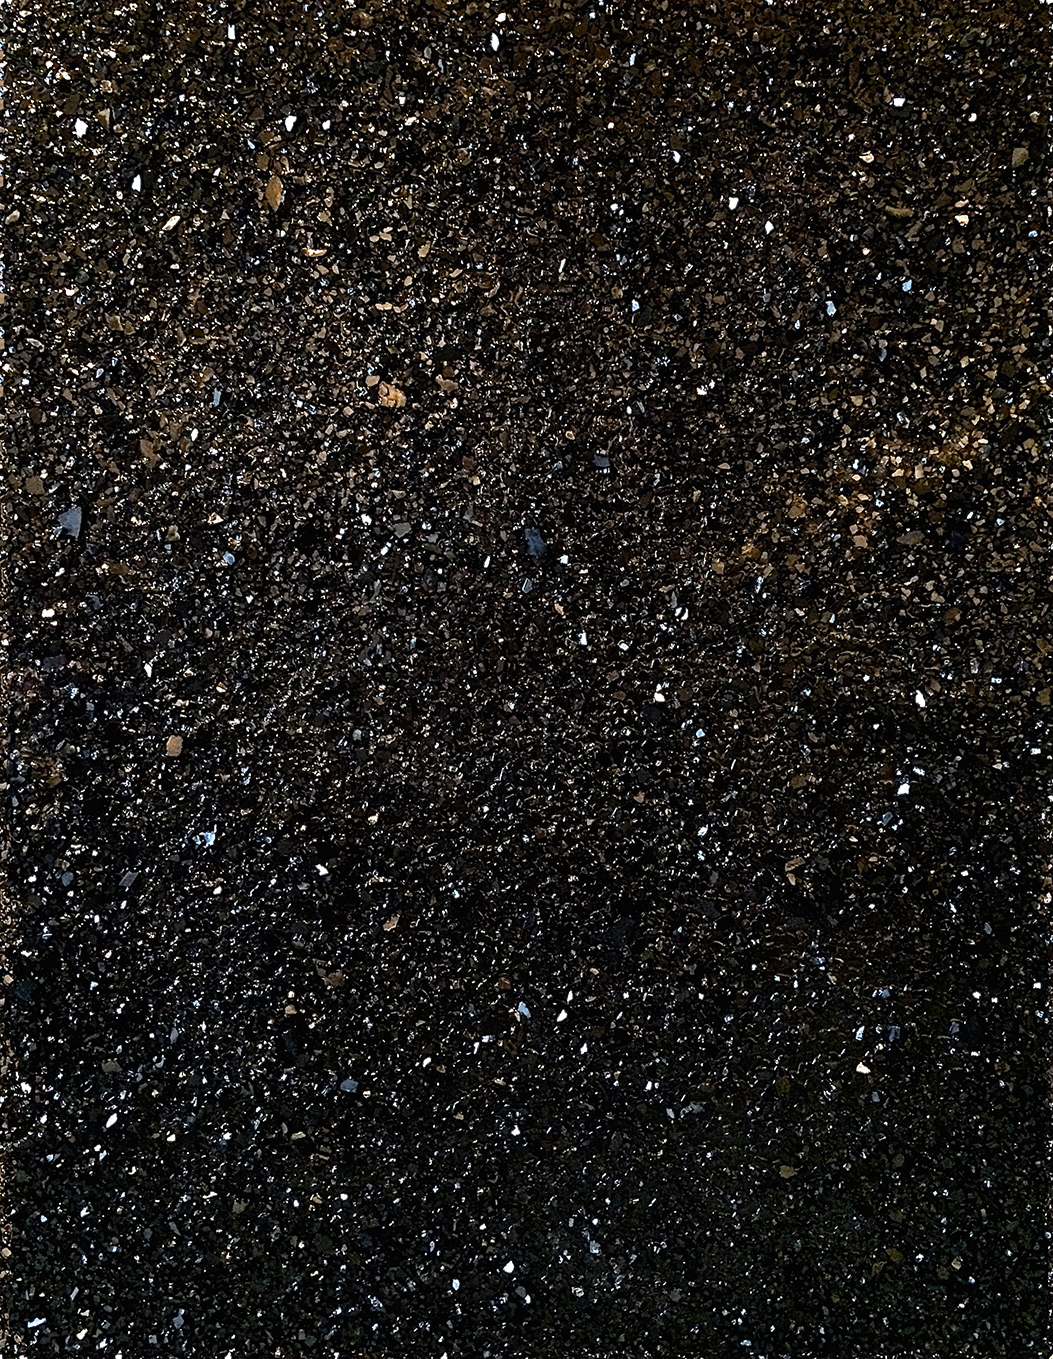 SHATTERED HIGH-RISE GLASS, OIL, RESIN, MOTOR OIL, ON CANVAS - 60X48